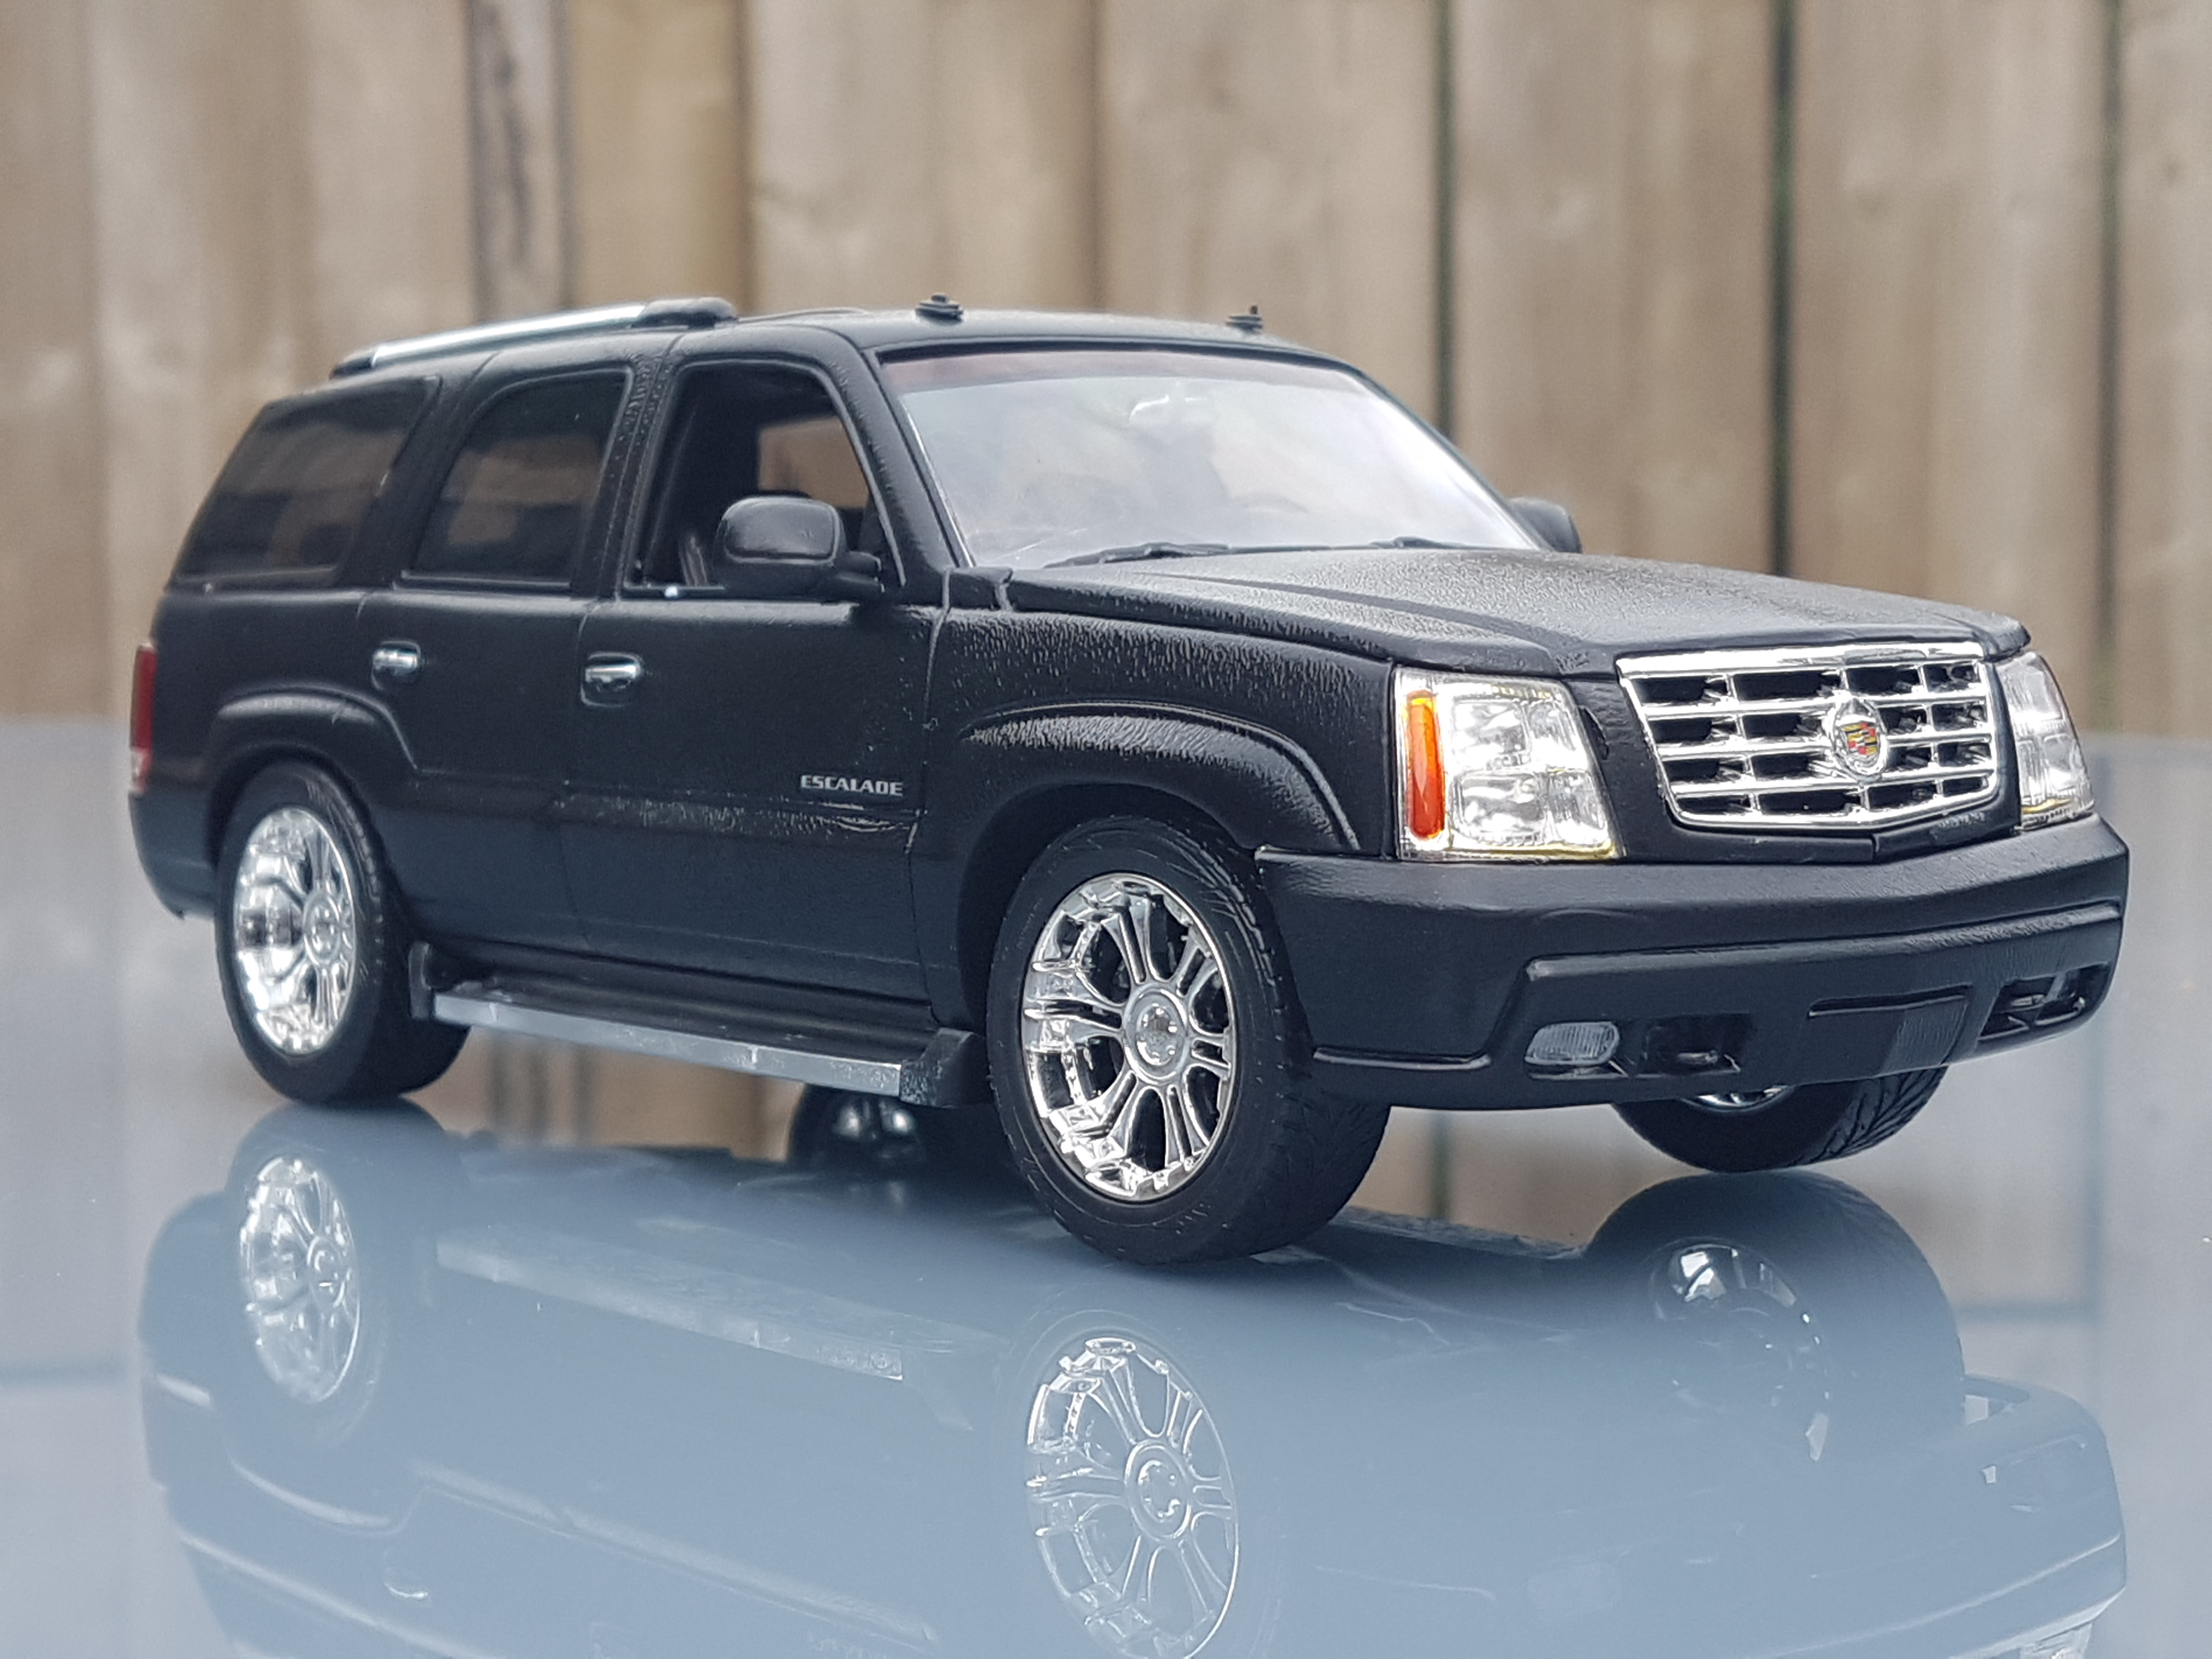 cadillac ratings reviews for sale escalade news truck msrp with